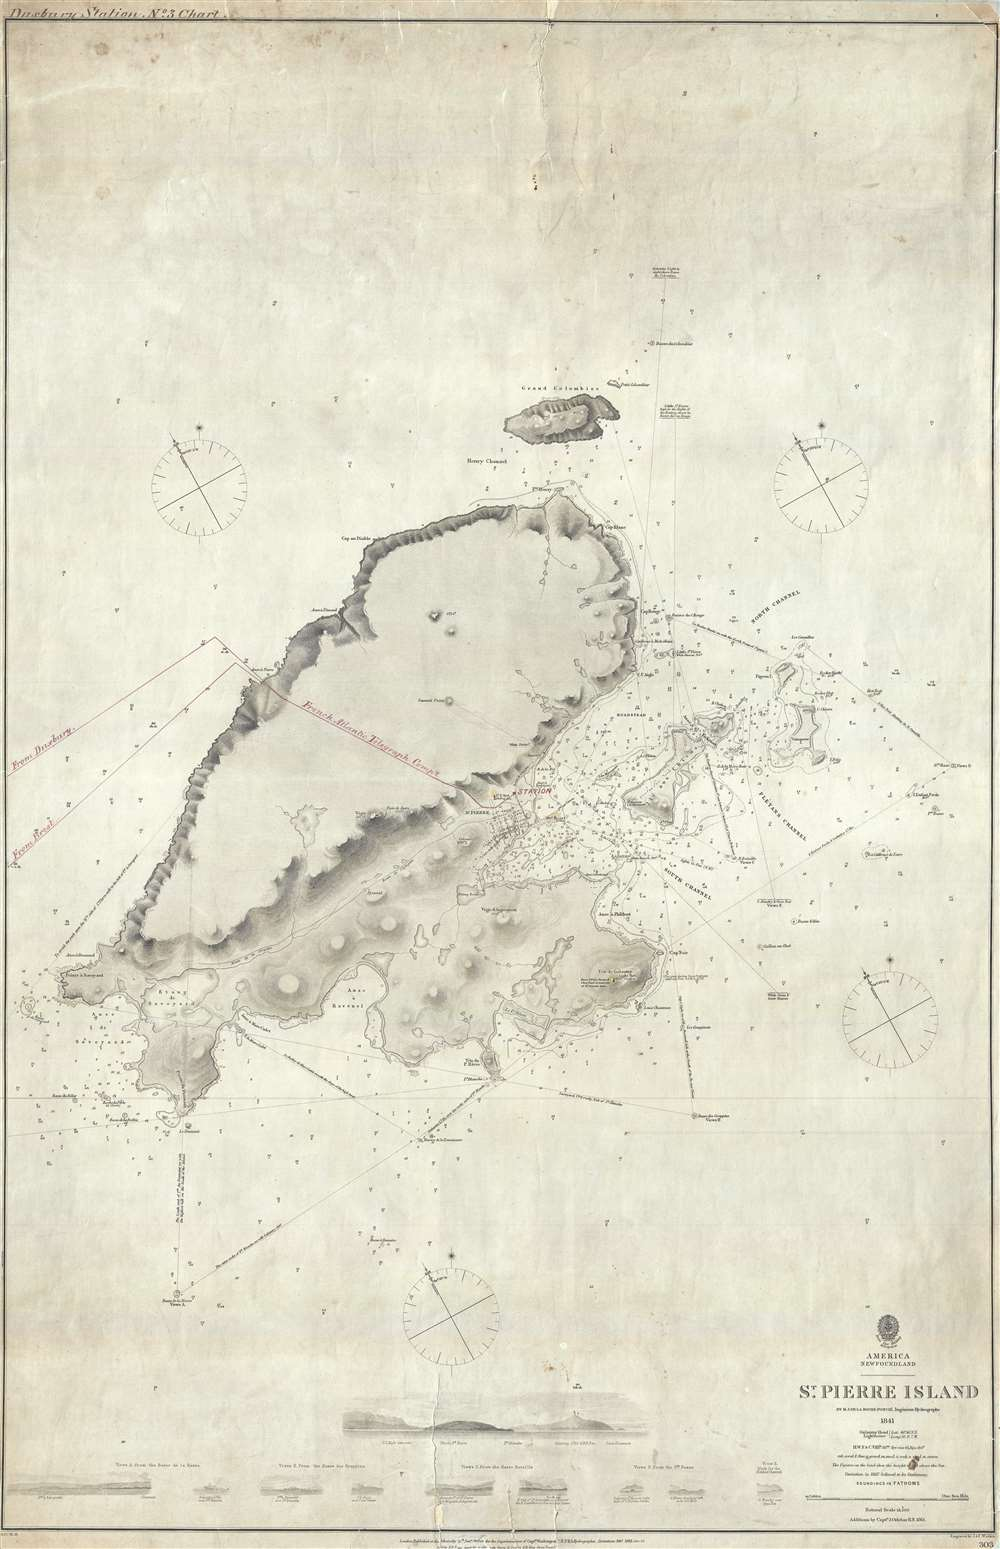 1865 Admiralty Chart of St Pierre Island (Miquelon) w/ TransAtlantic Cable